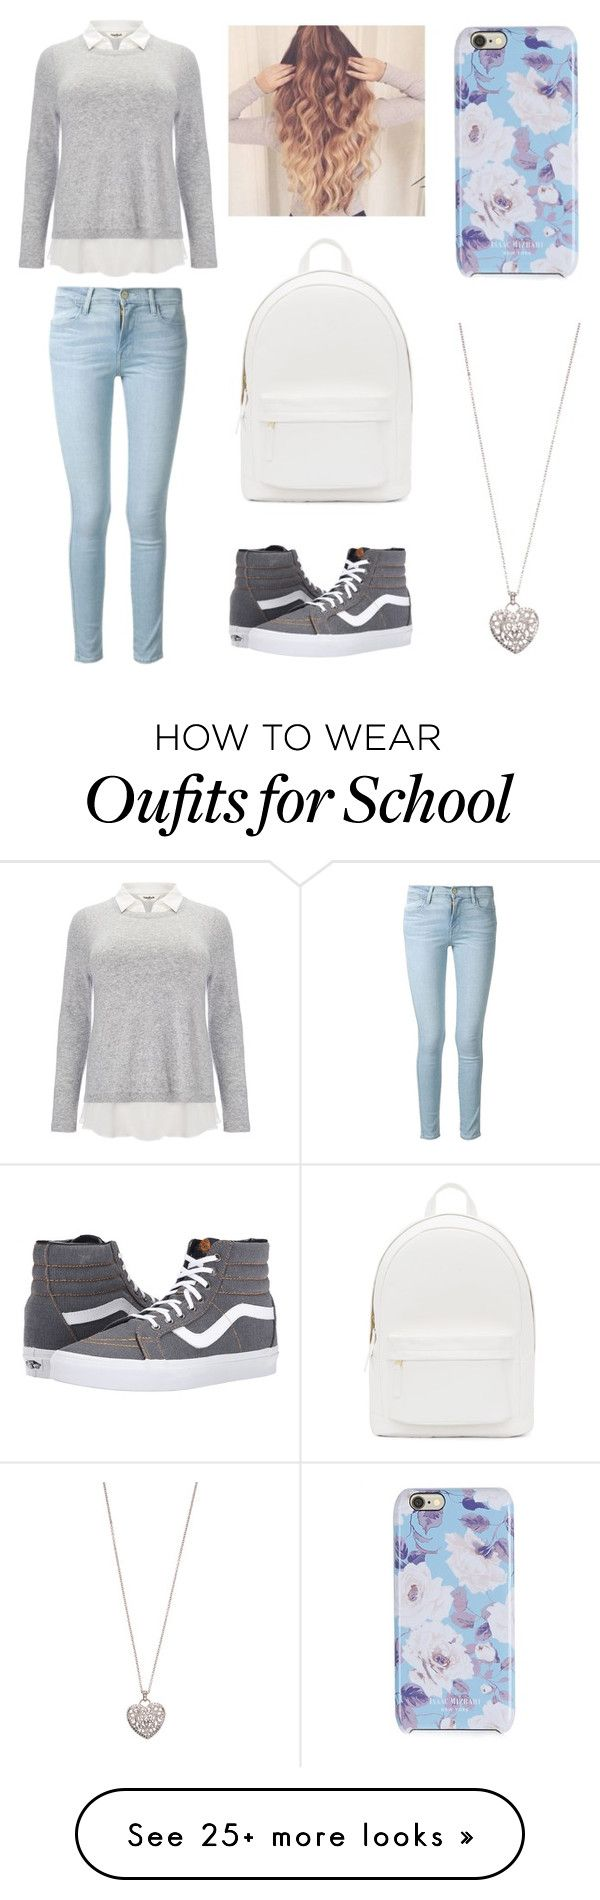 """""""simple school outfit"""" by rach-bonjour on Polyvore featuring Studio 8, Frame Denim, Vans, PB 0110, Isaac Mizrahi and Accessorize"""